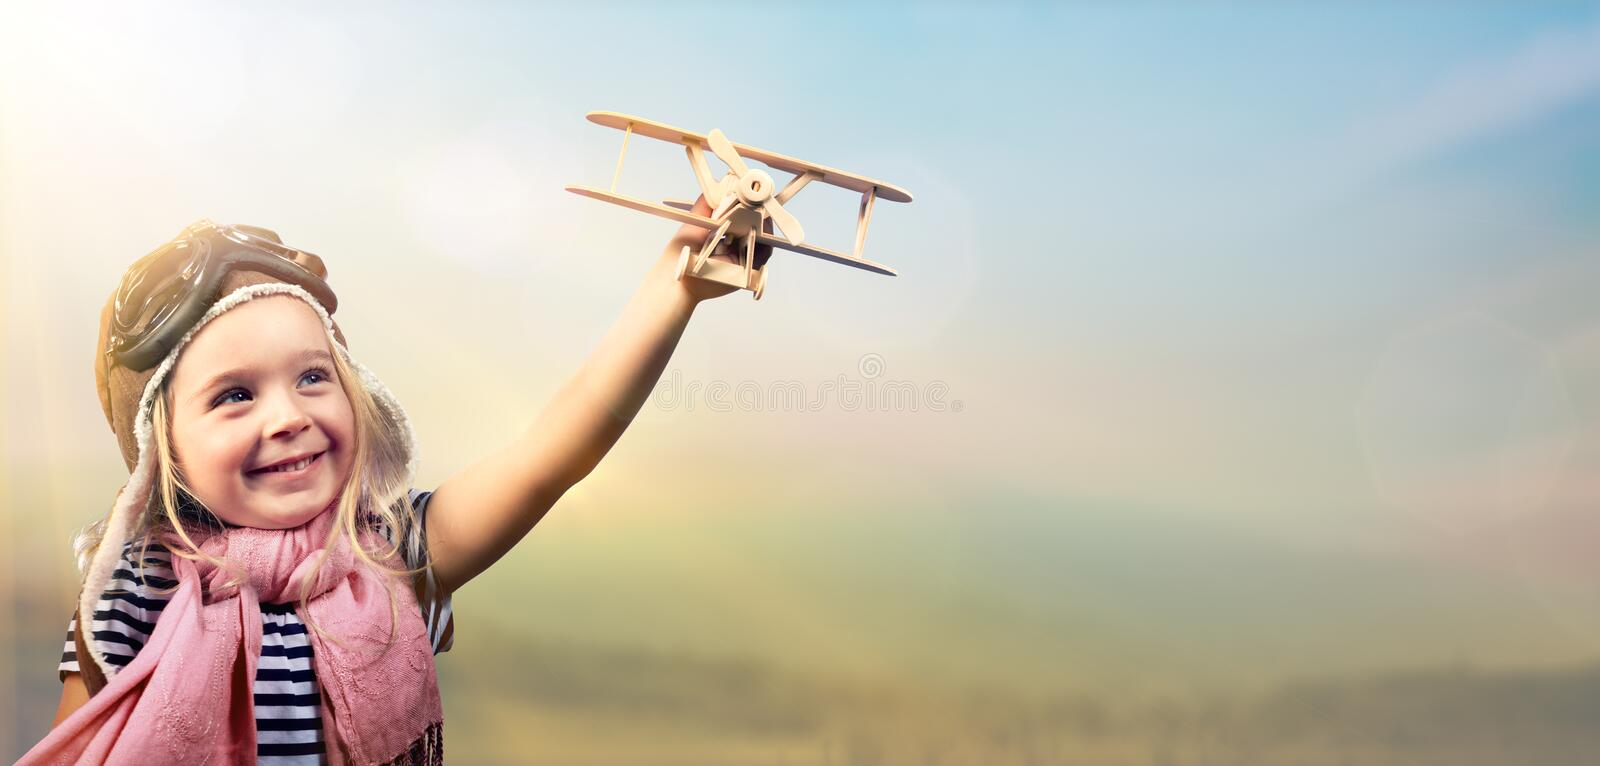 Freedom To Dream - Joyful Child Playing With Airplane royalty free stock photos